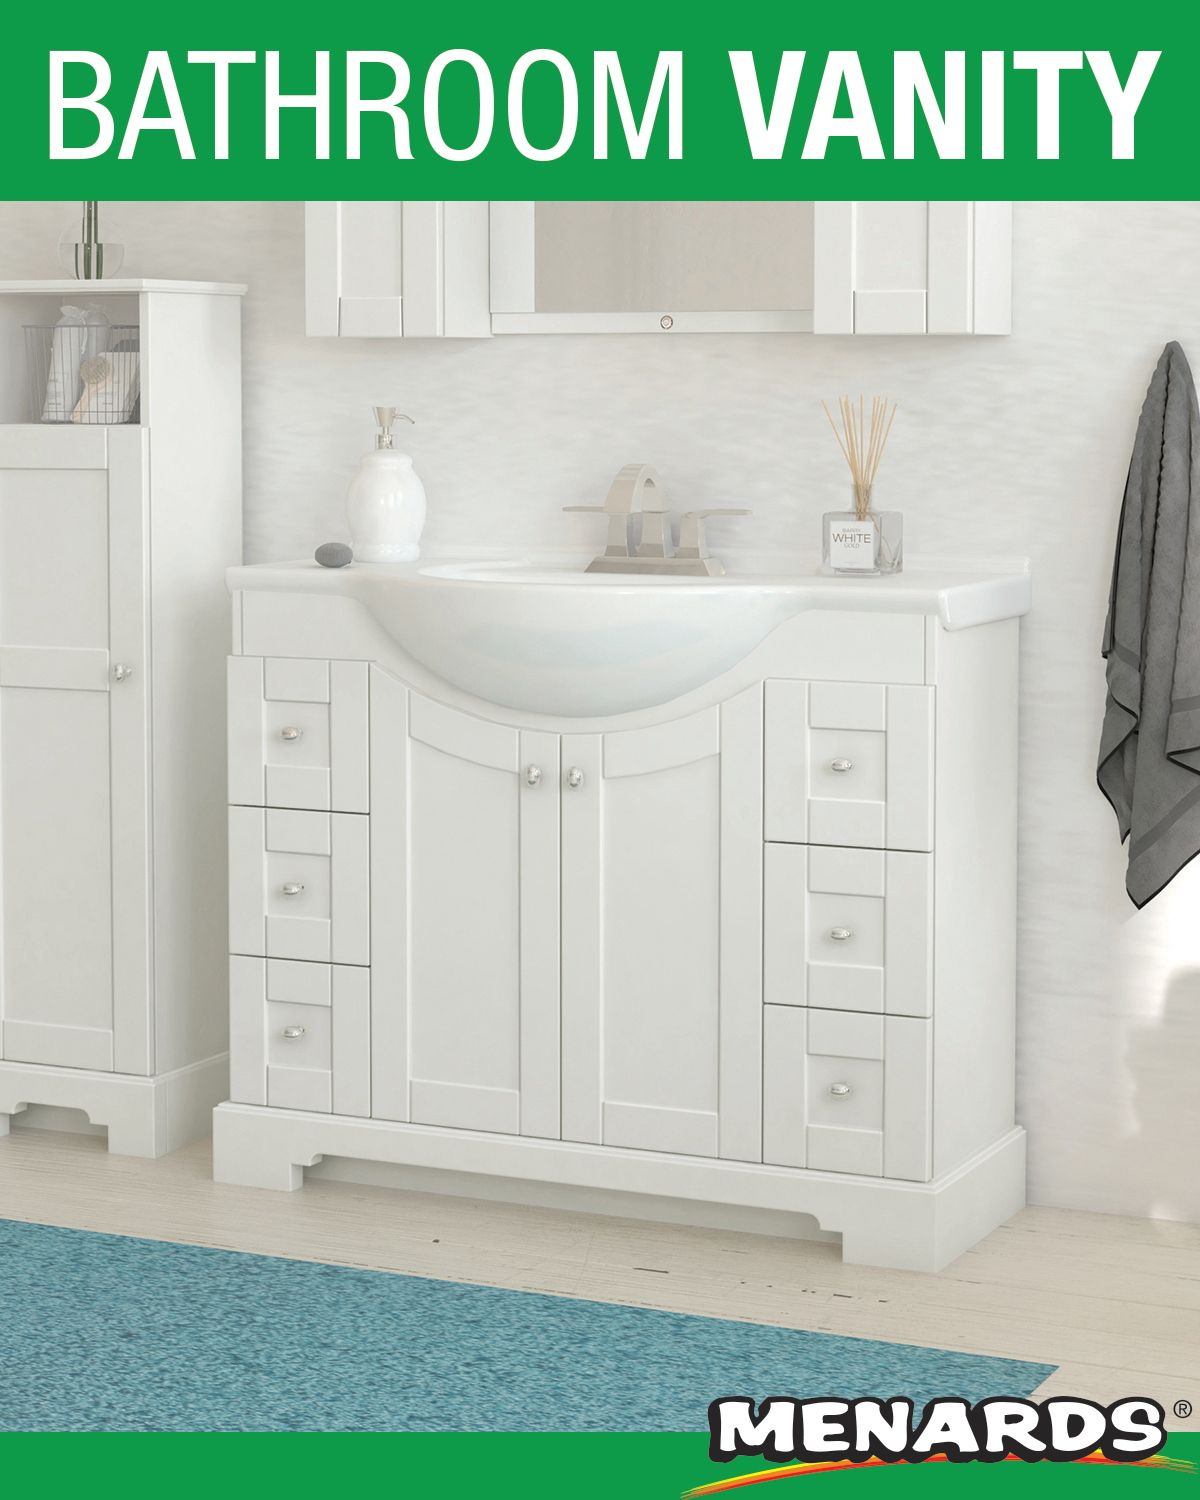 Its Space Saving Design And Storage Accessories Make The